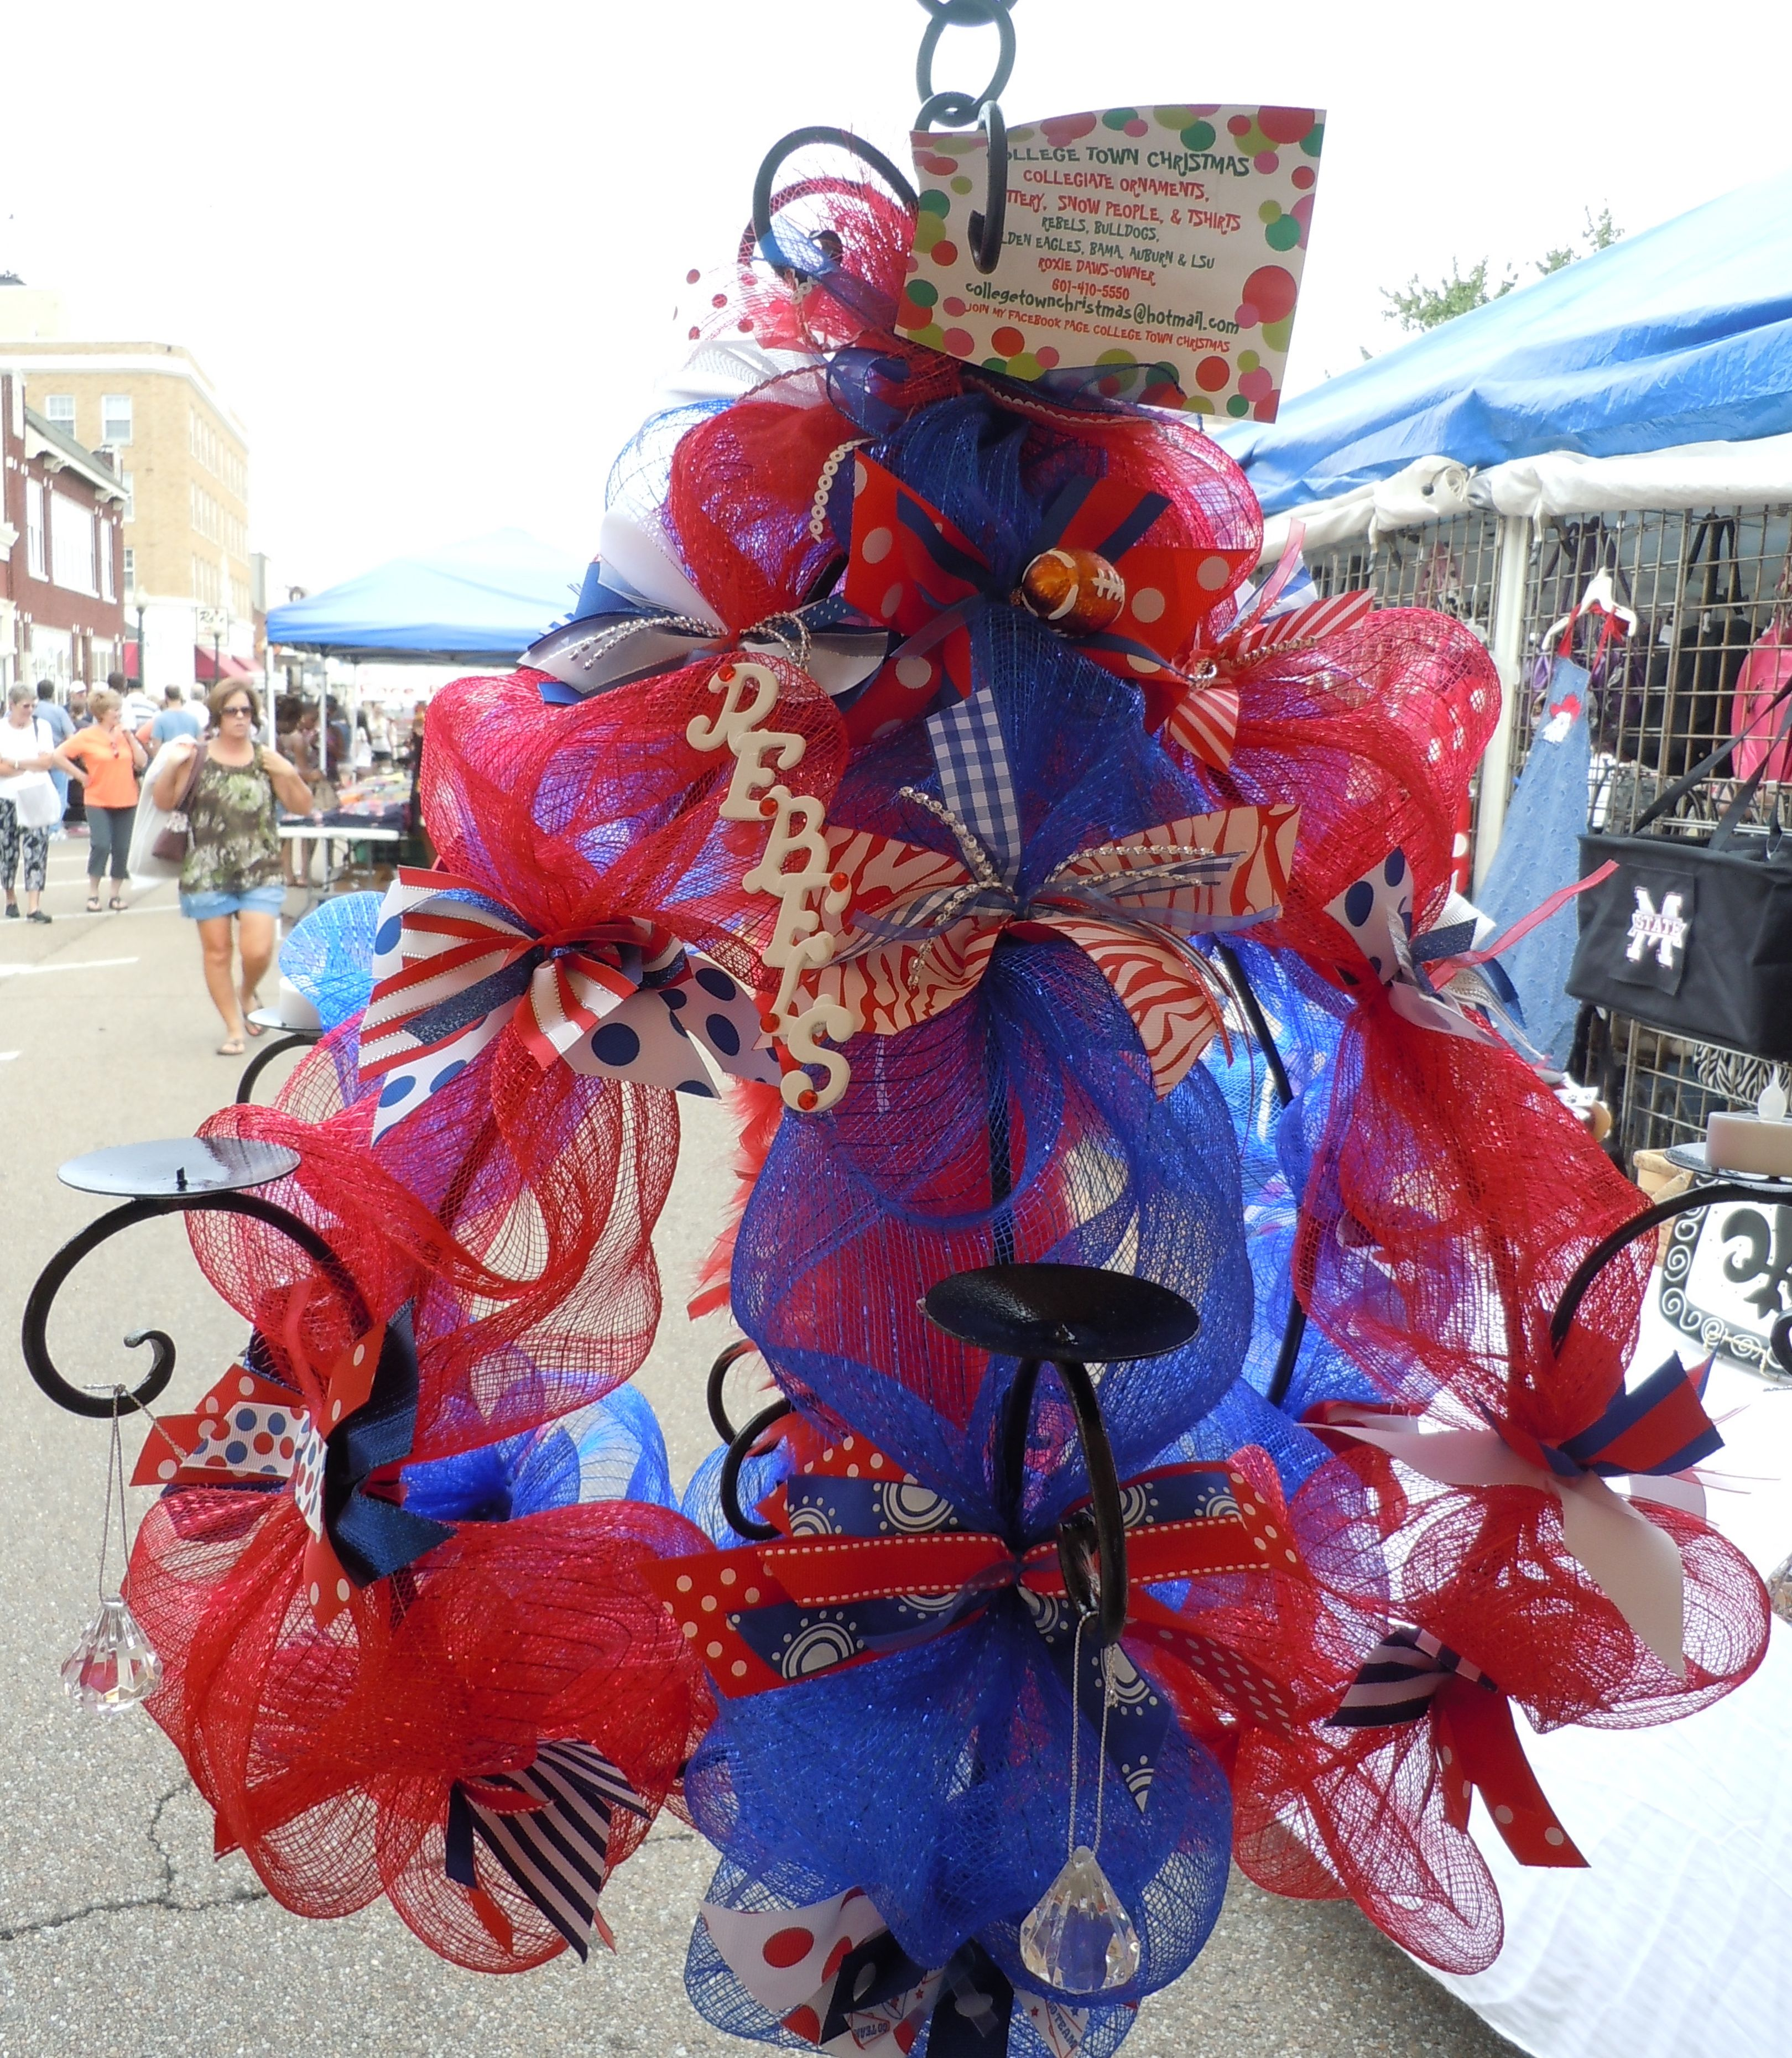 Ole miss chandelier roxie pinterest tailgating and crafts tailgate fanatics ole miss chandelier for tent arubaitofo Image collections